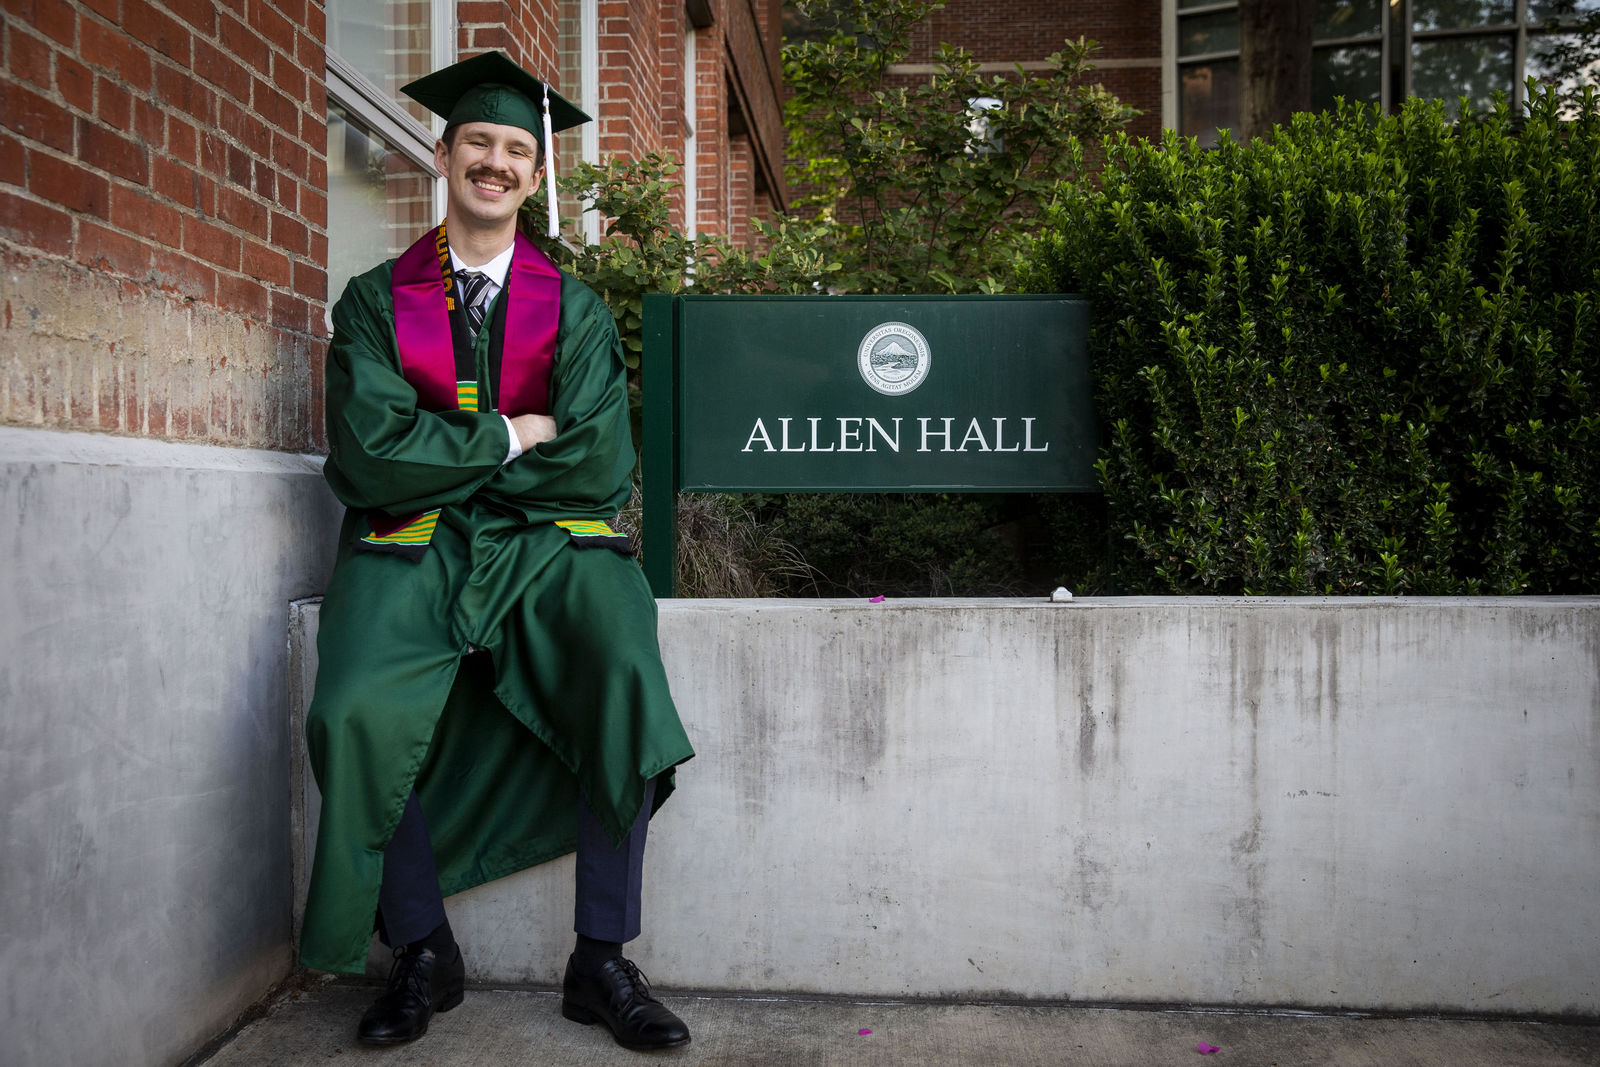 U of O student Donny Morrison graduated form the School of Journalism after battling back from addiction issues as a teen. (Photo submitted by Donny Morrison)